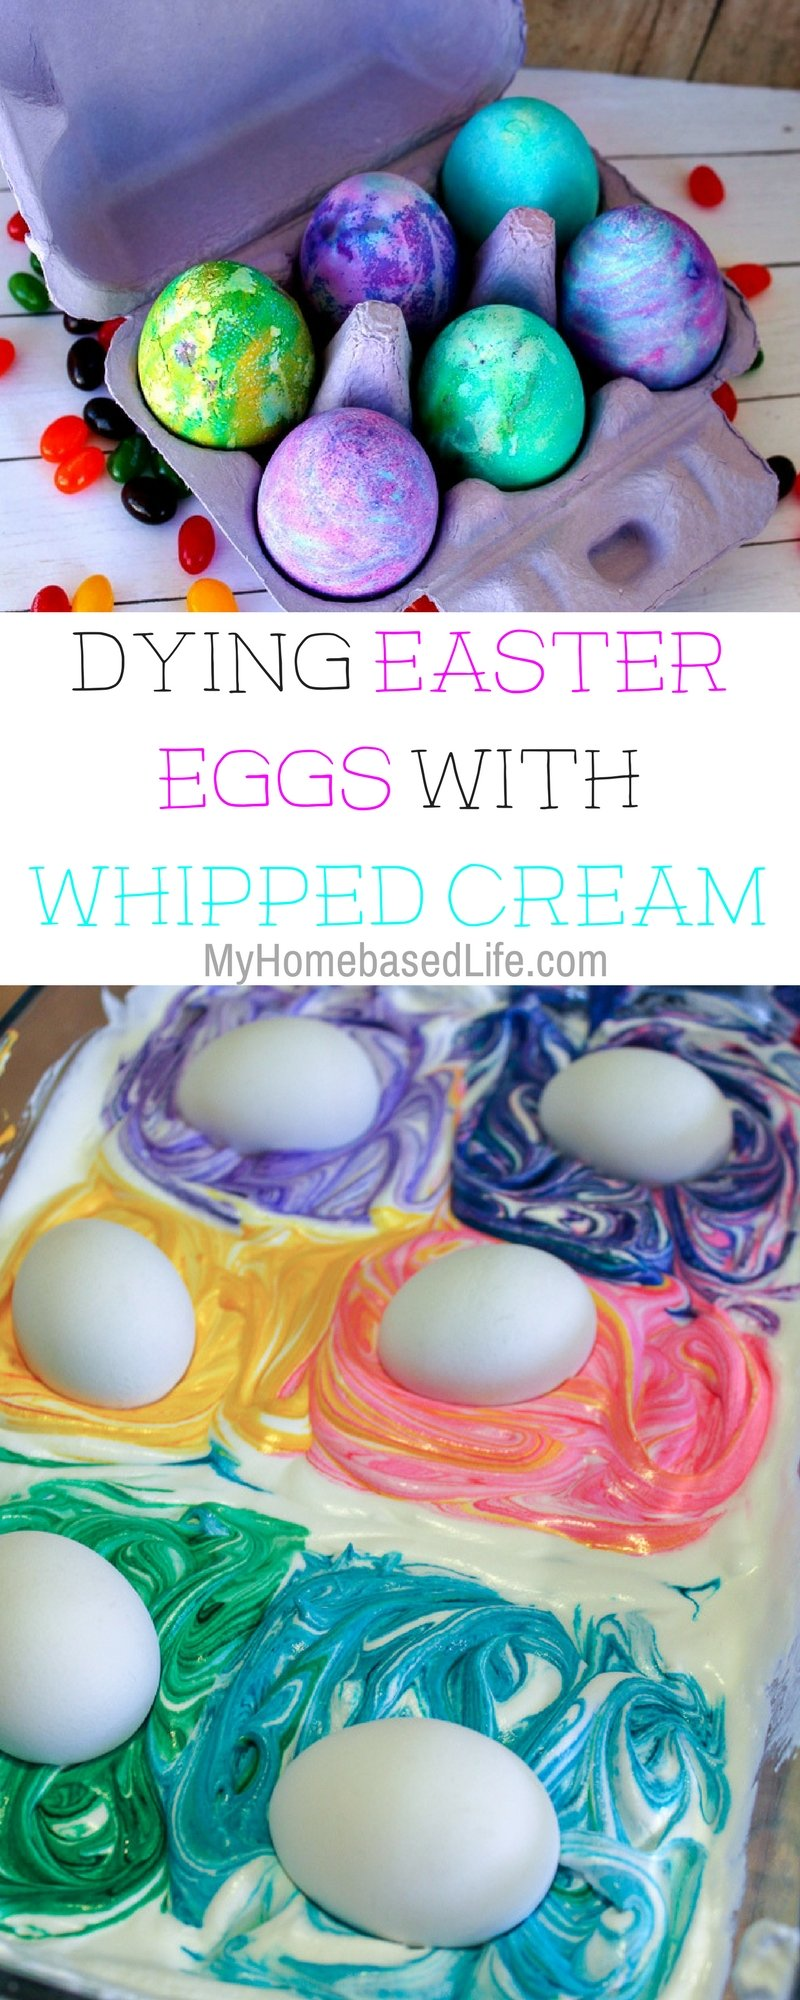 Dying Easter Eggs With Whipped Cream My Home Based Life